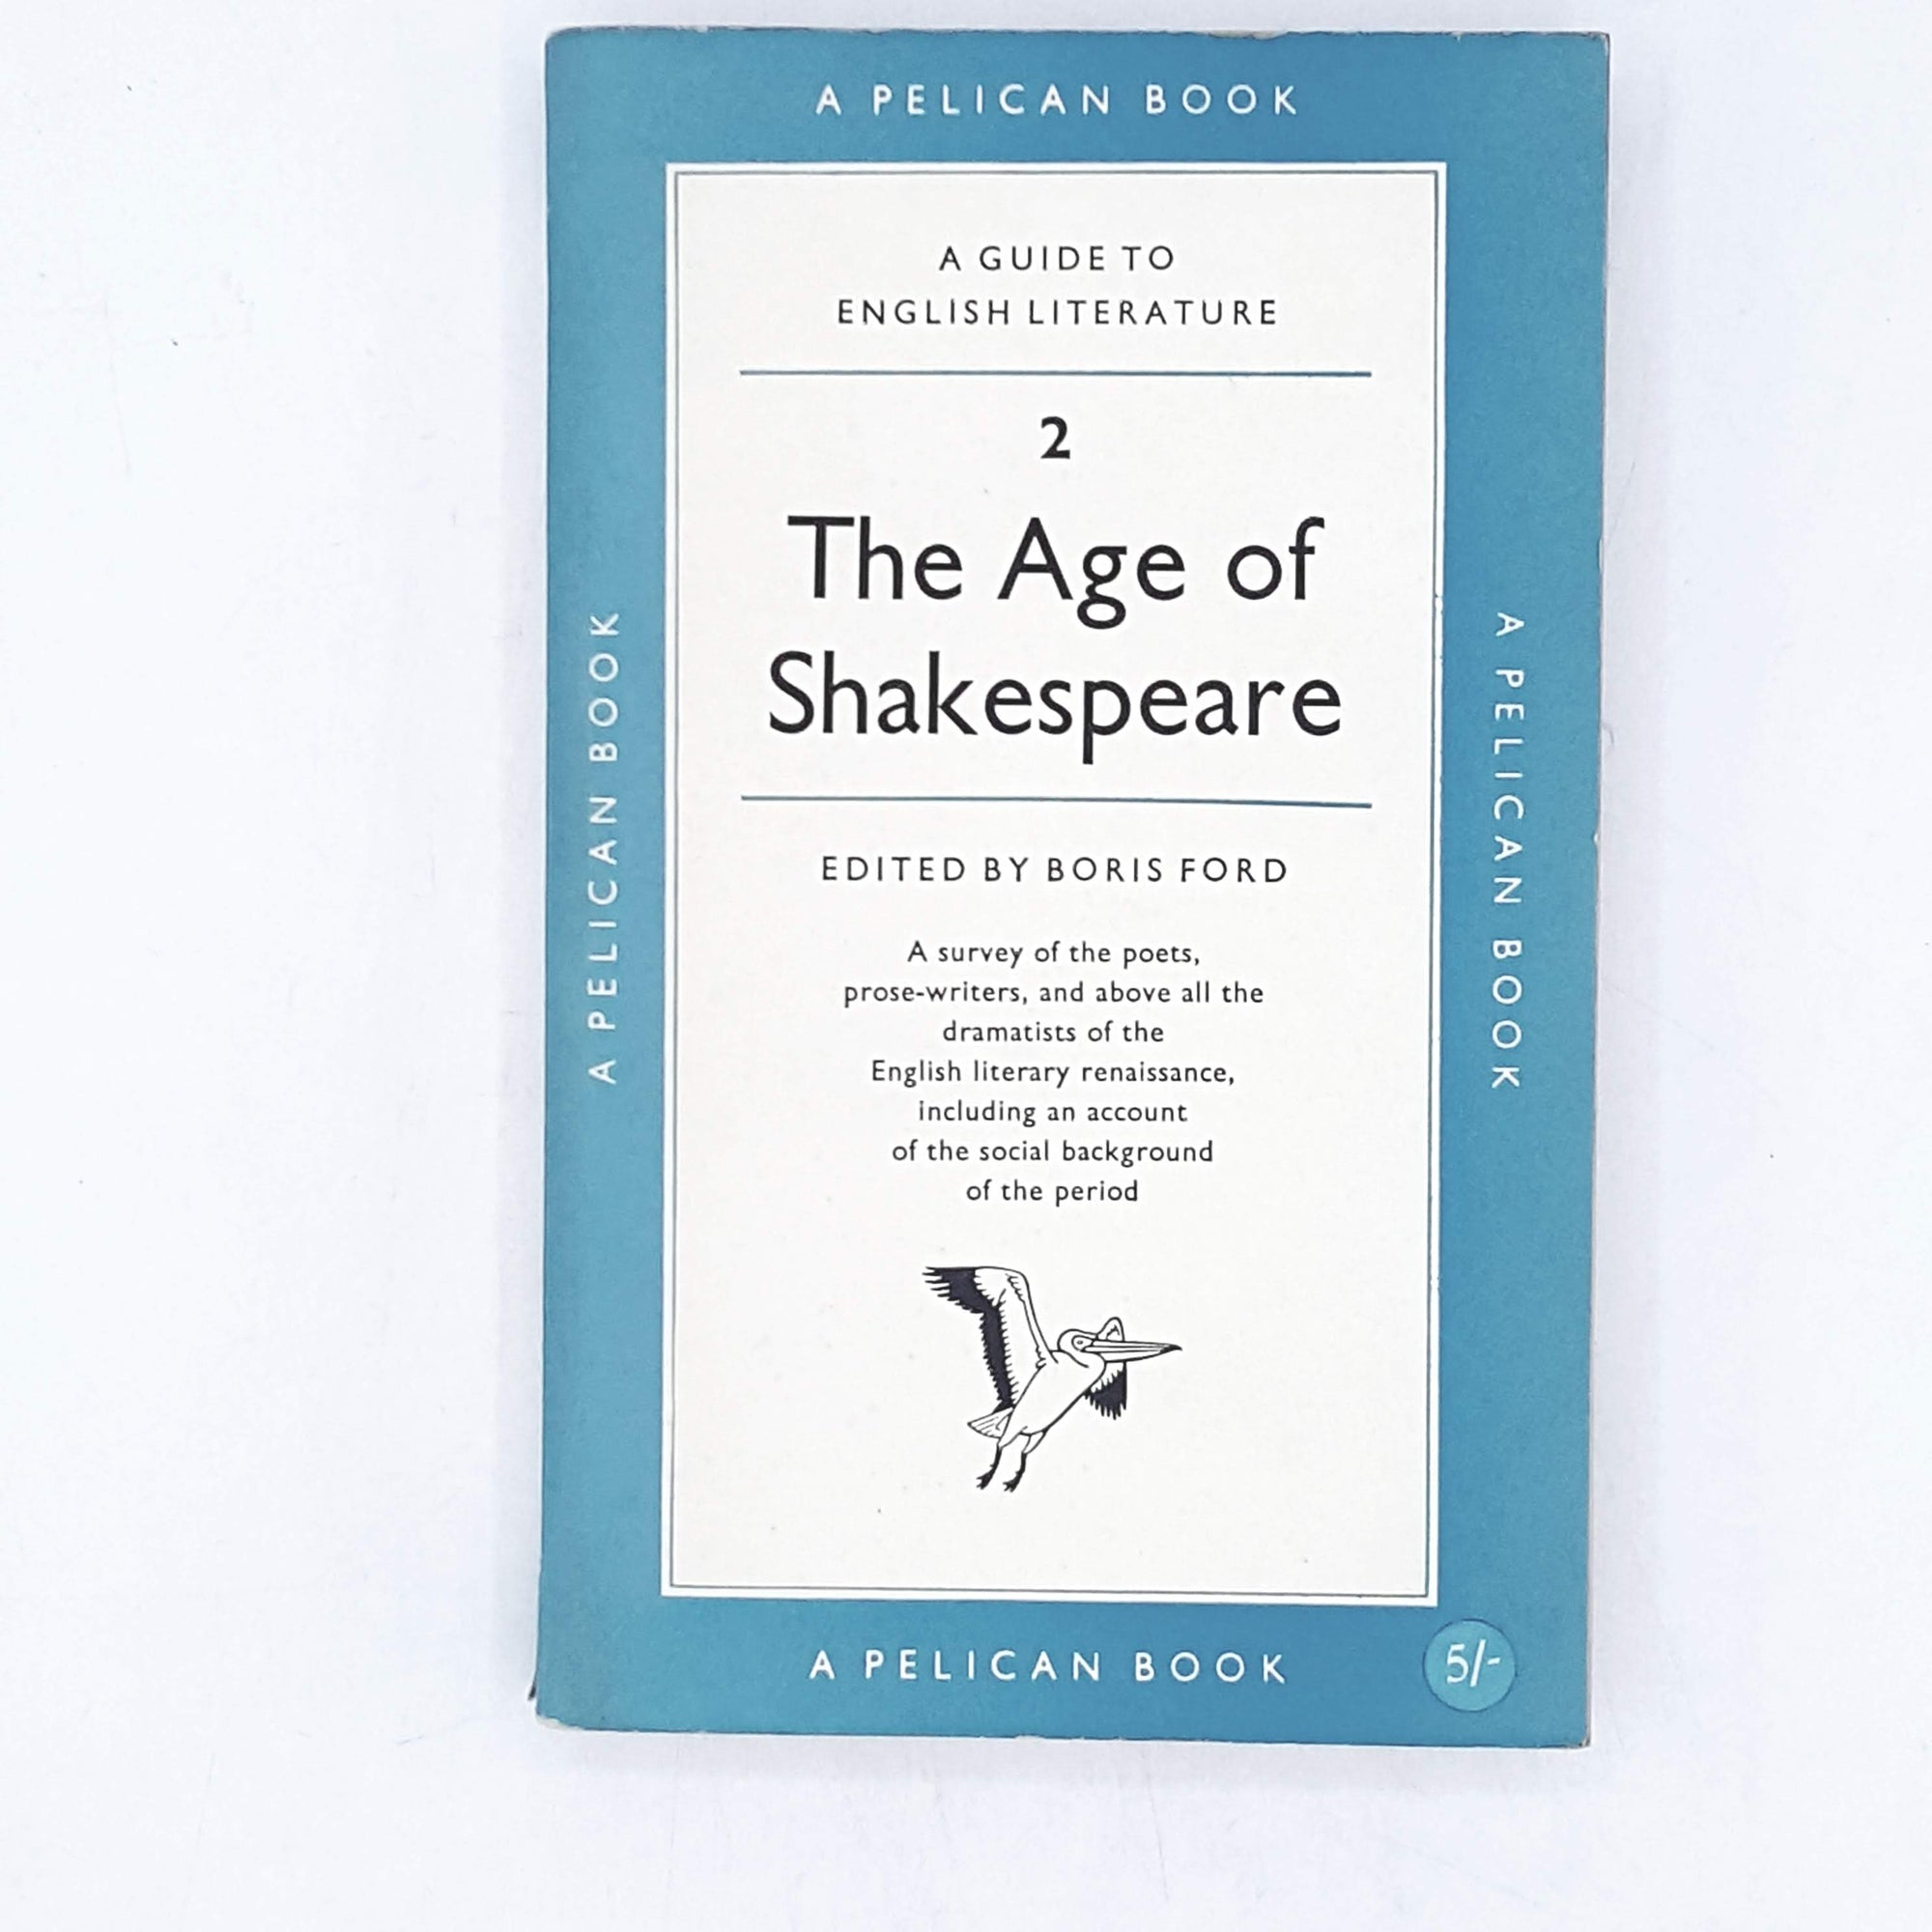 The Age of Shakespeare by Boris Ford 1955